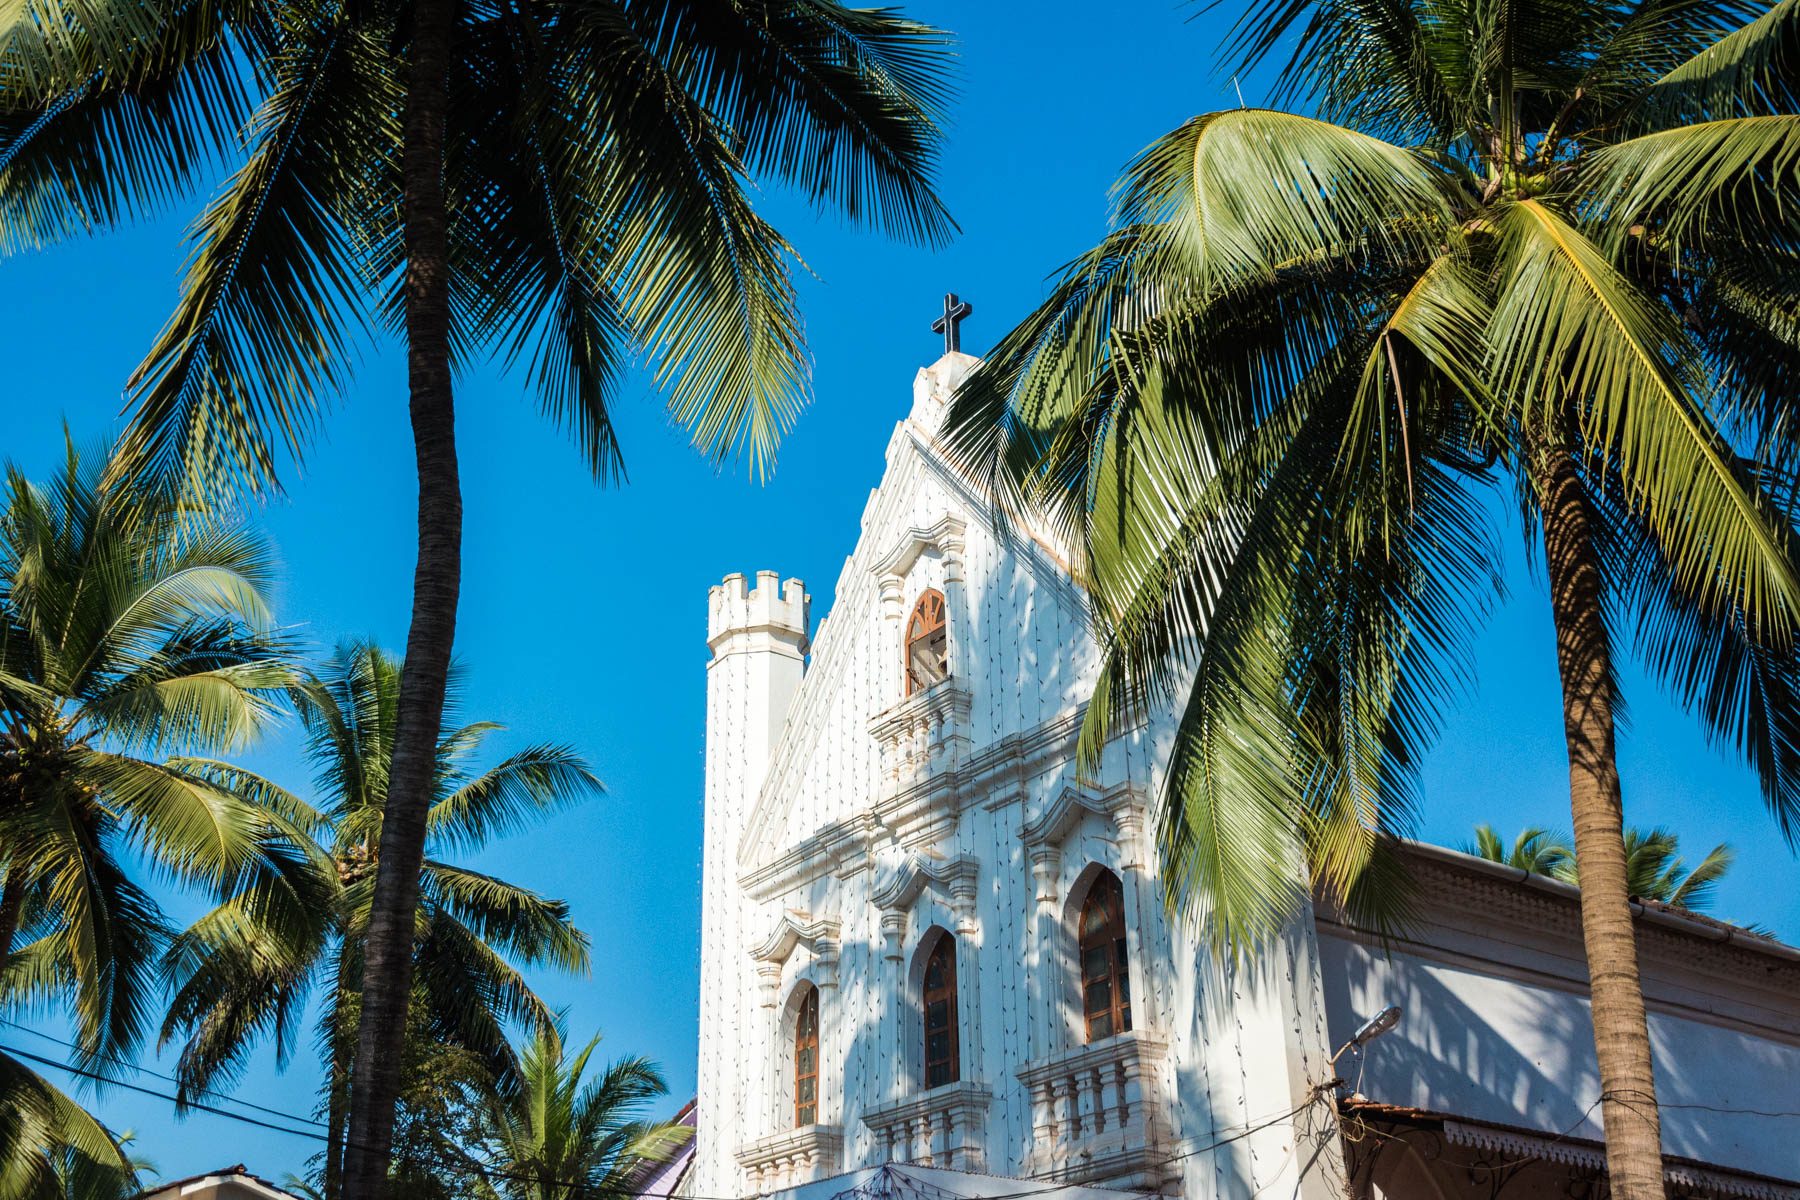 Guide to Christmas in Baga and Calangute in Goa, India - Our Lady of Piety church in Calangute - Lost With Purpose